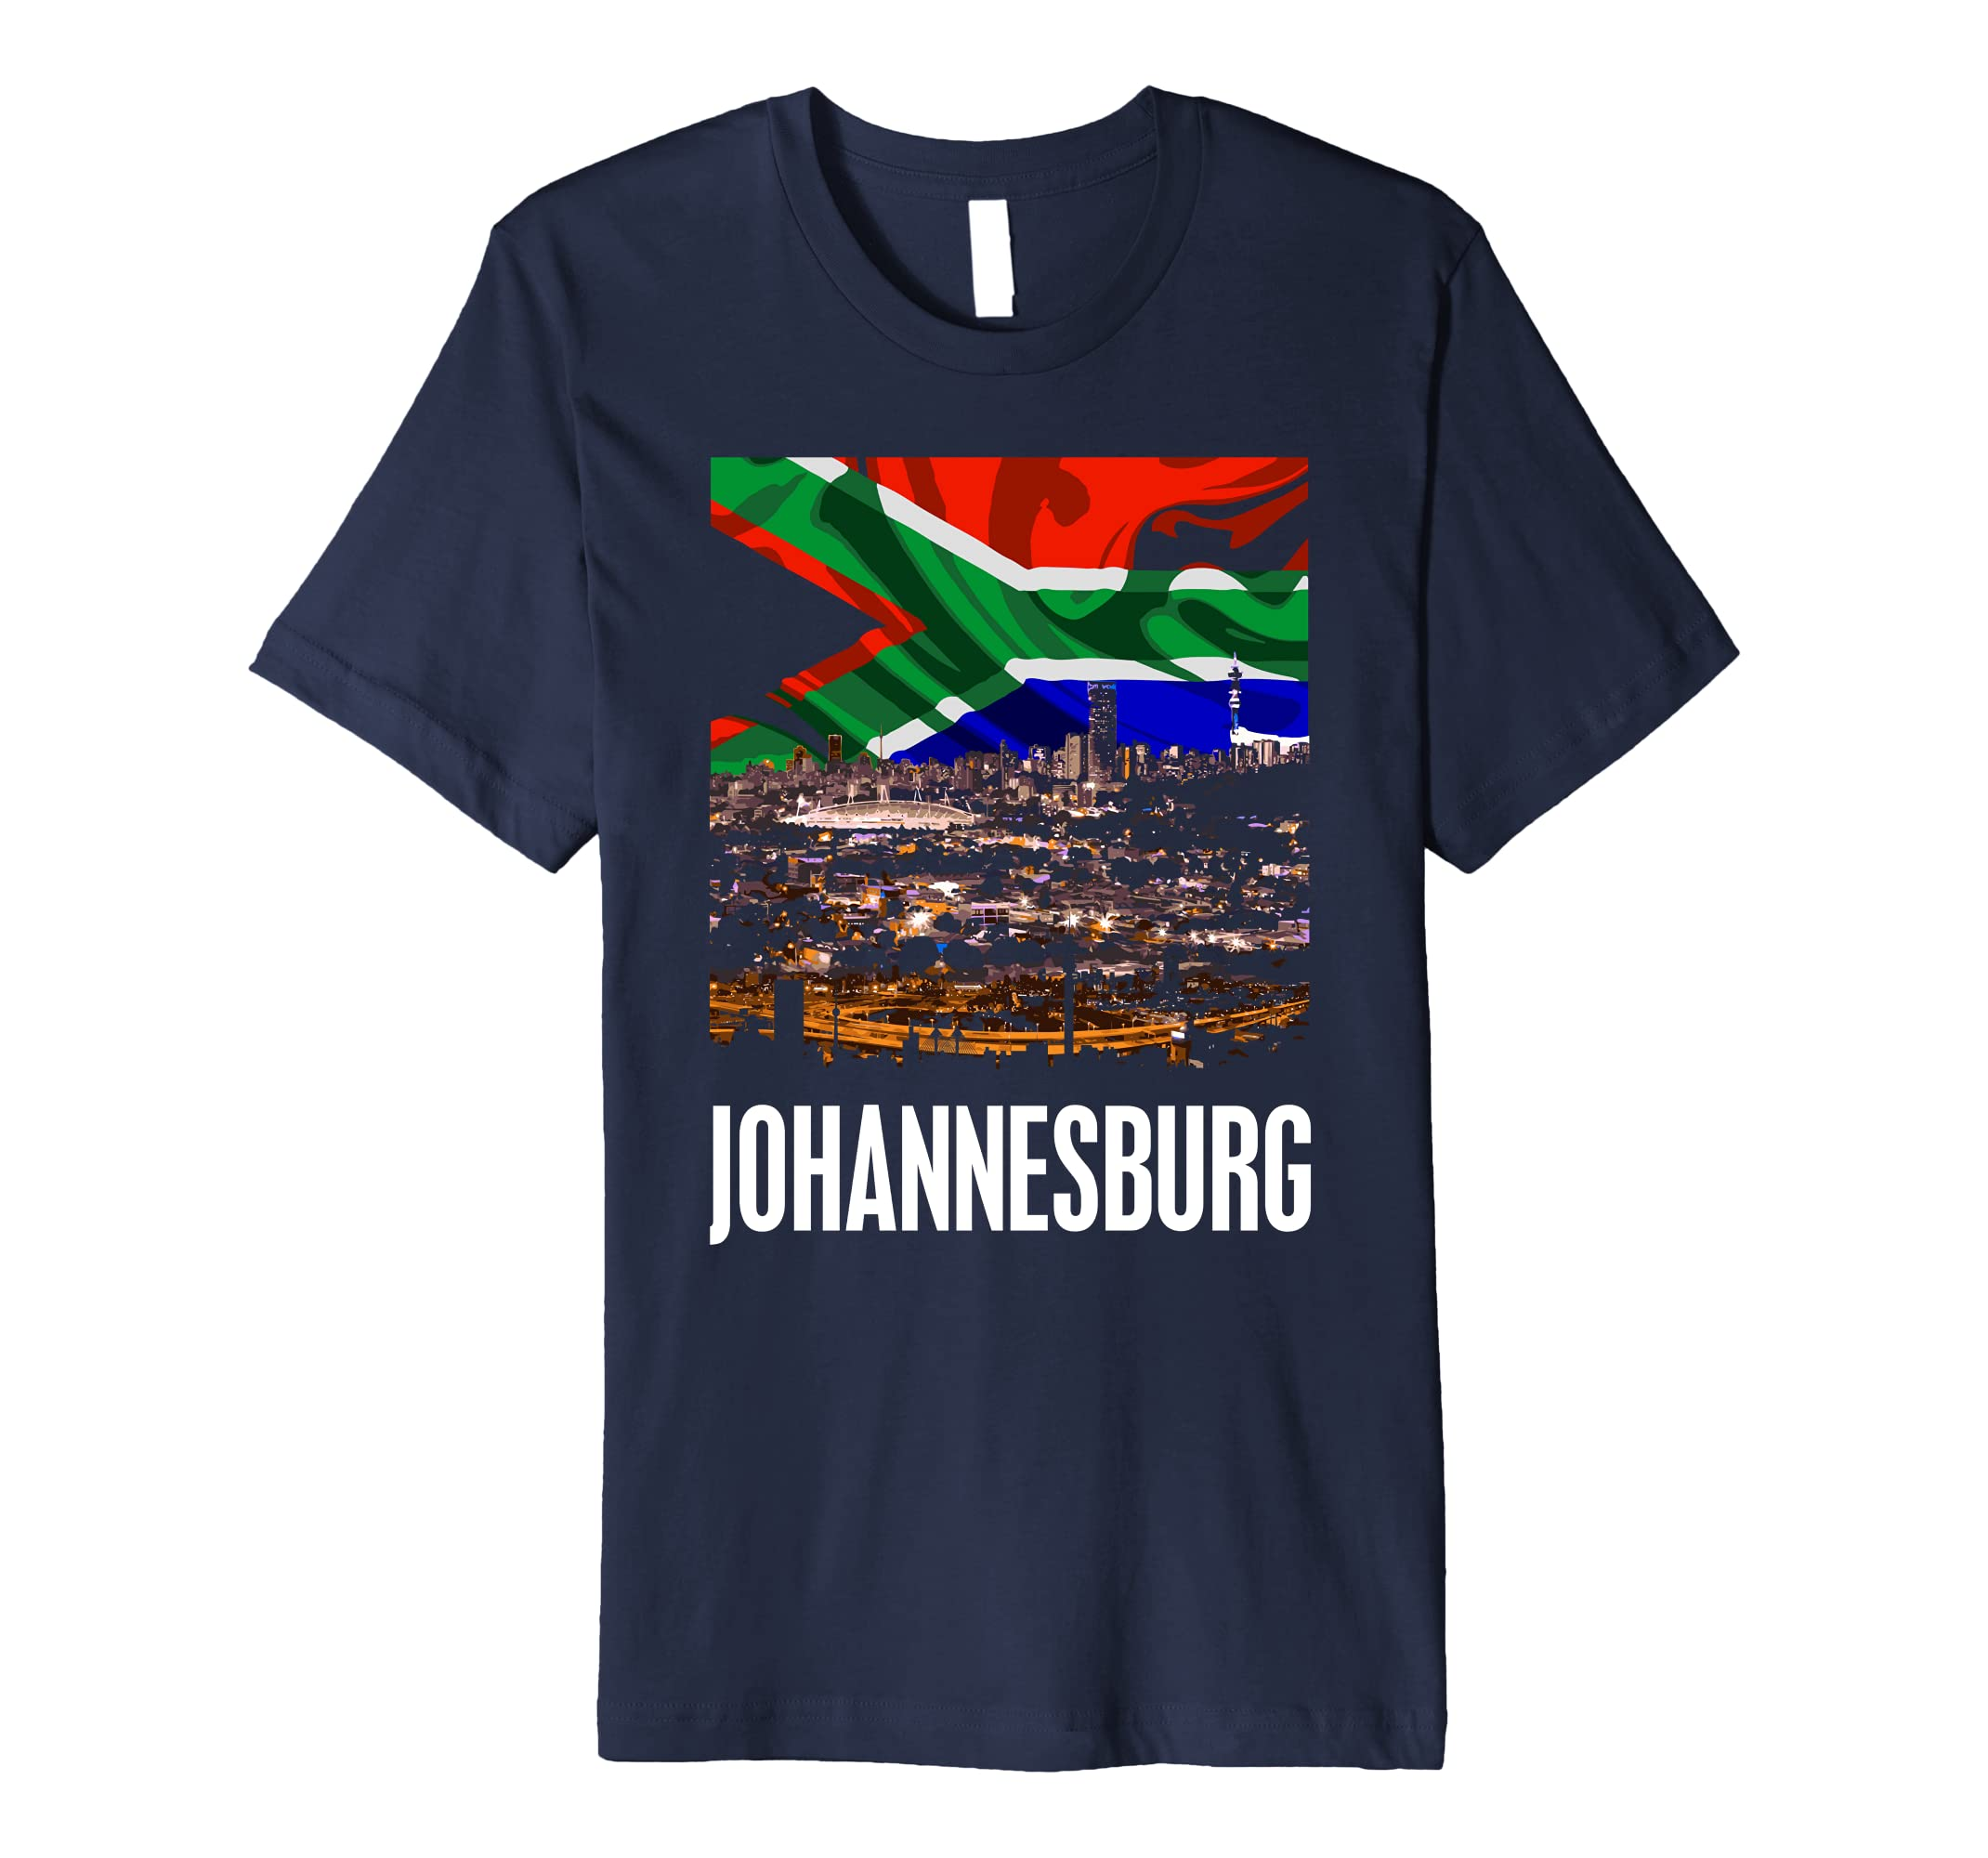 T Shirt Printing Machine Olx South Africa Carley Amp Connellan